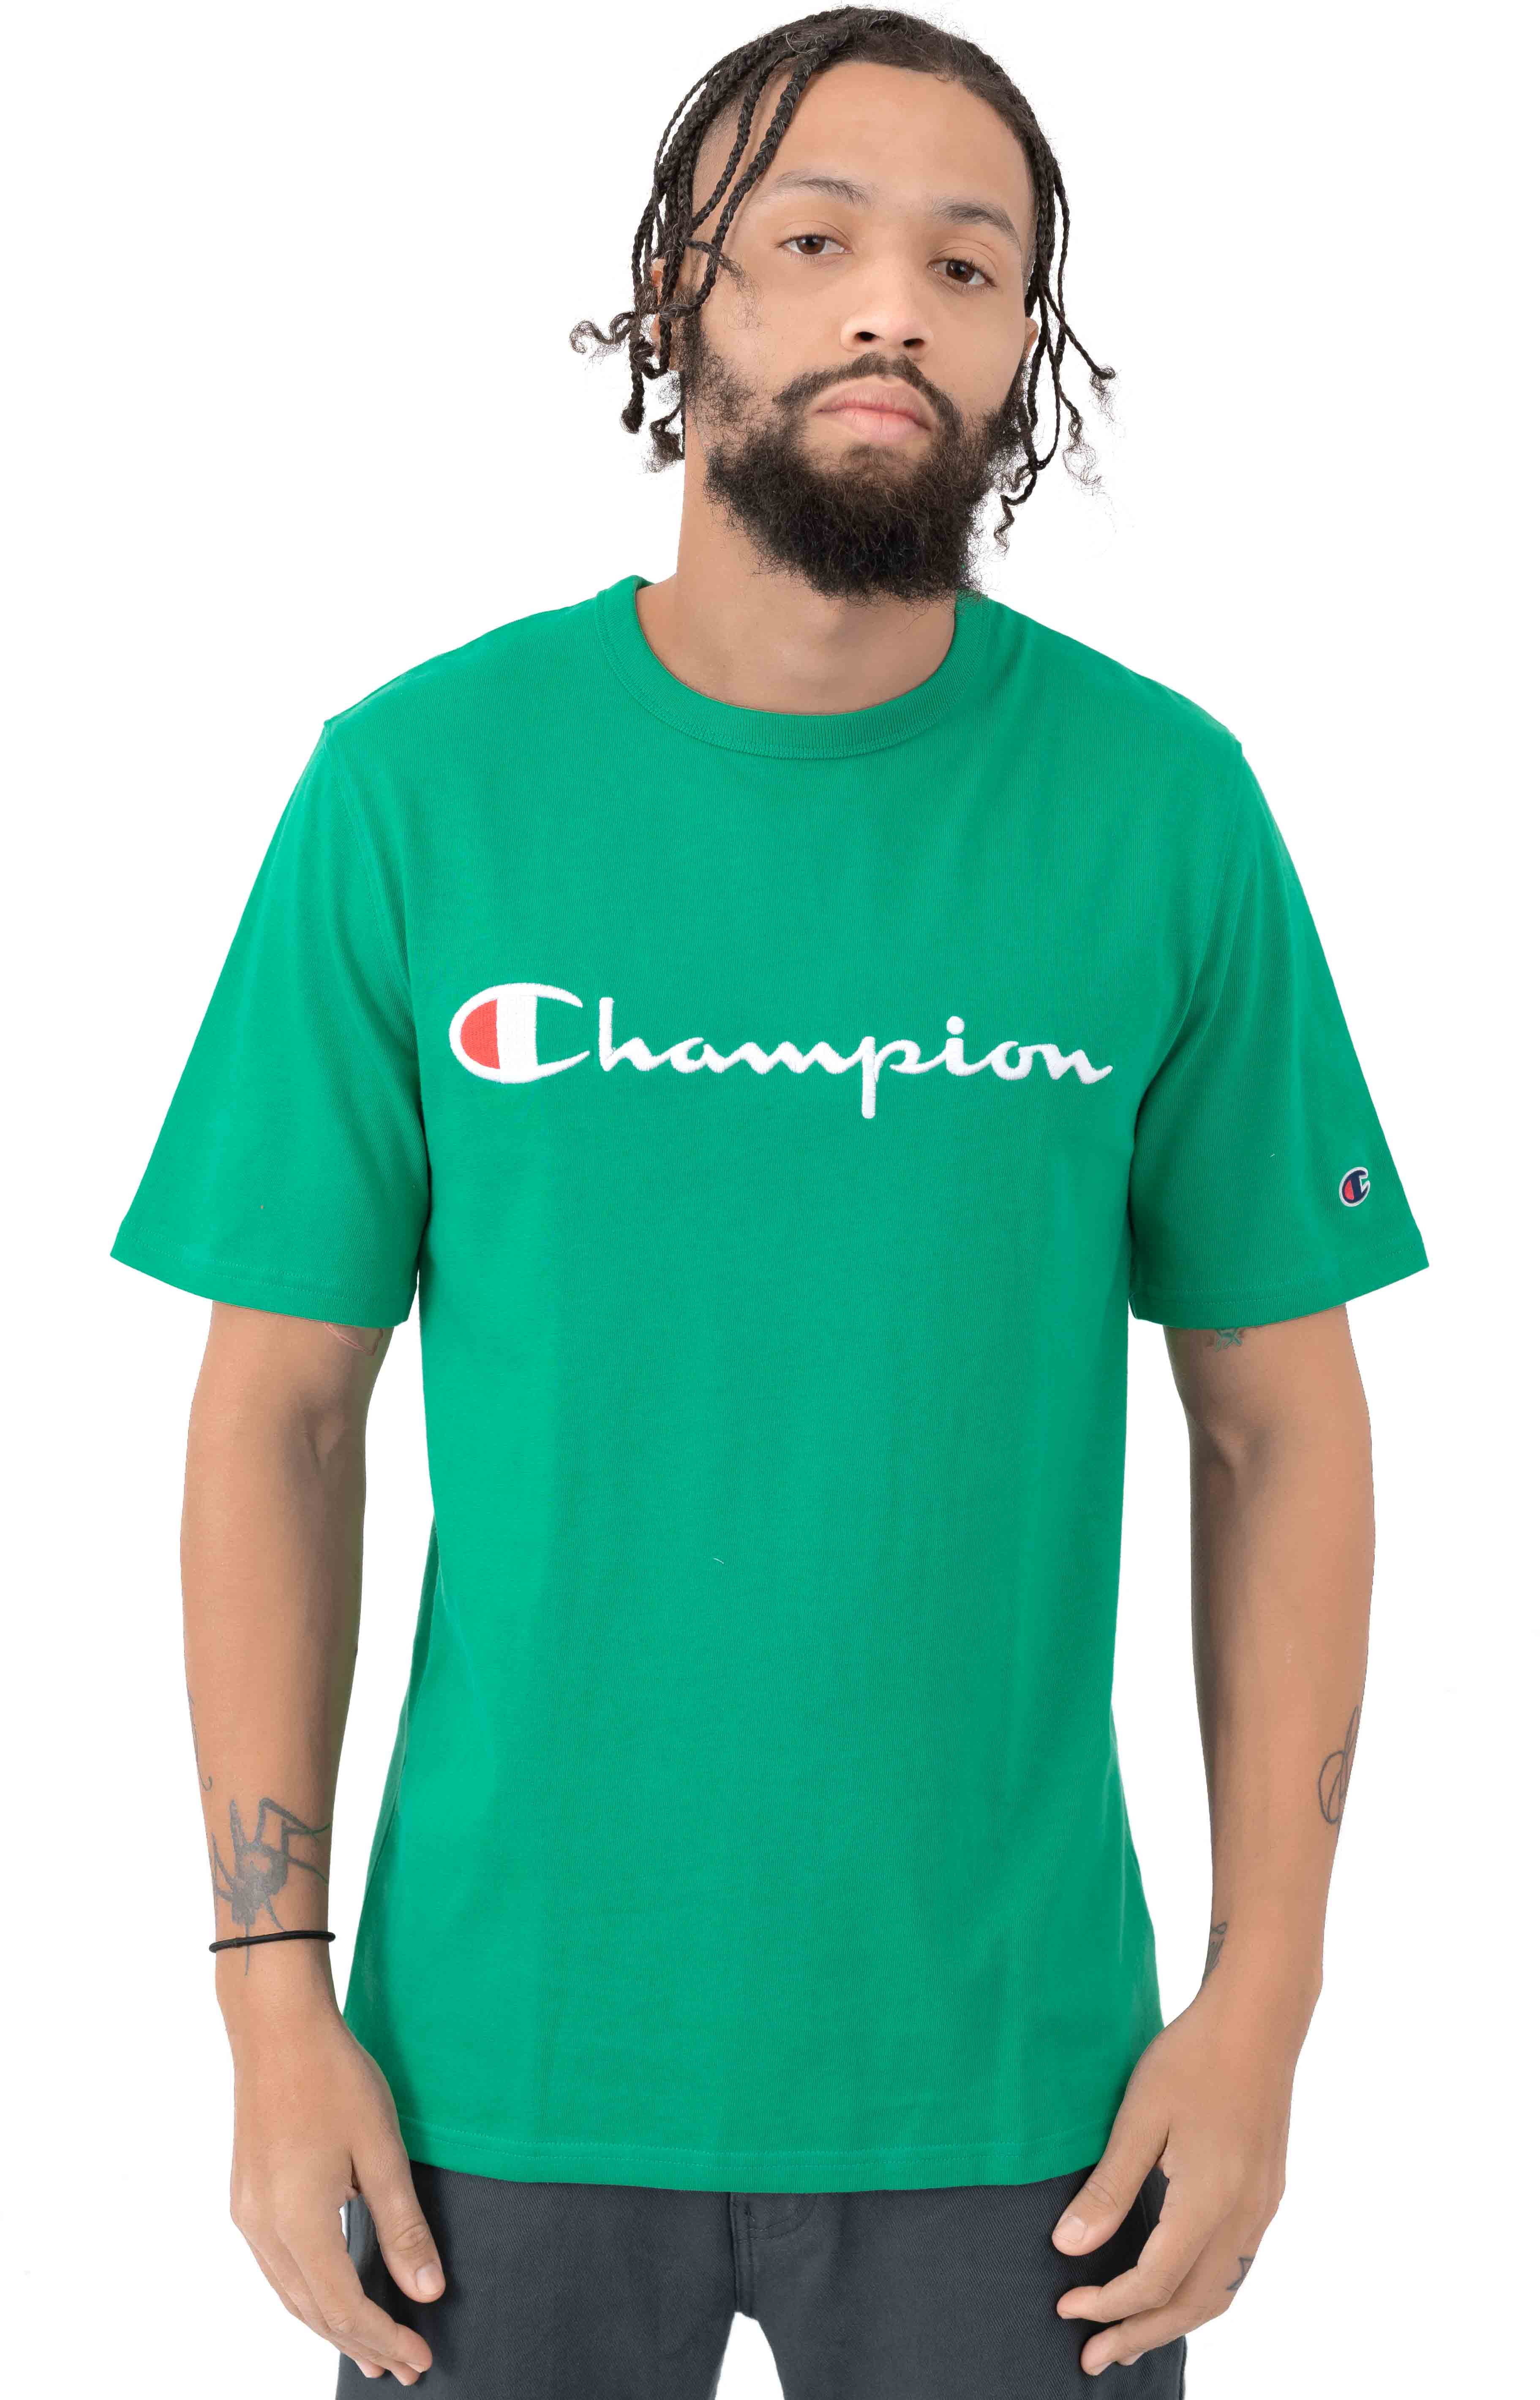 Heritage Script Embroidered T-Shirt - Kelly Green